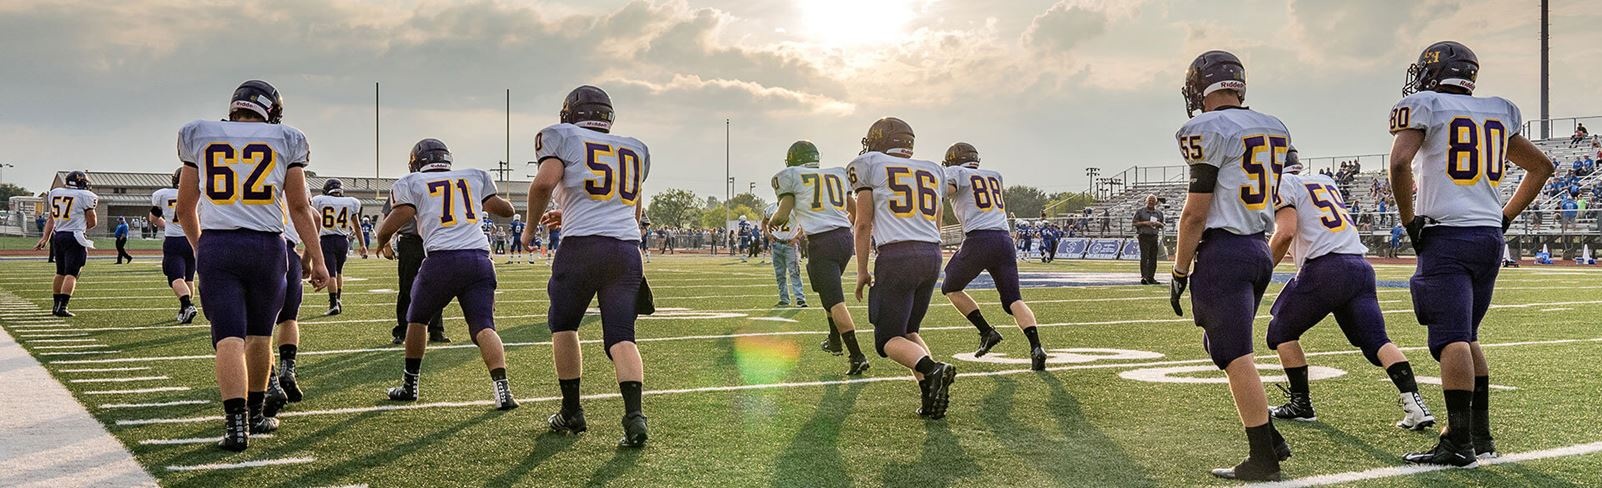 Rancho Sienna Liberty Hill High School football team playing on field in late afternoon